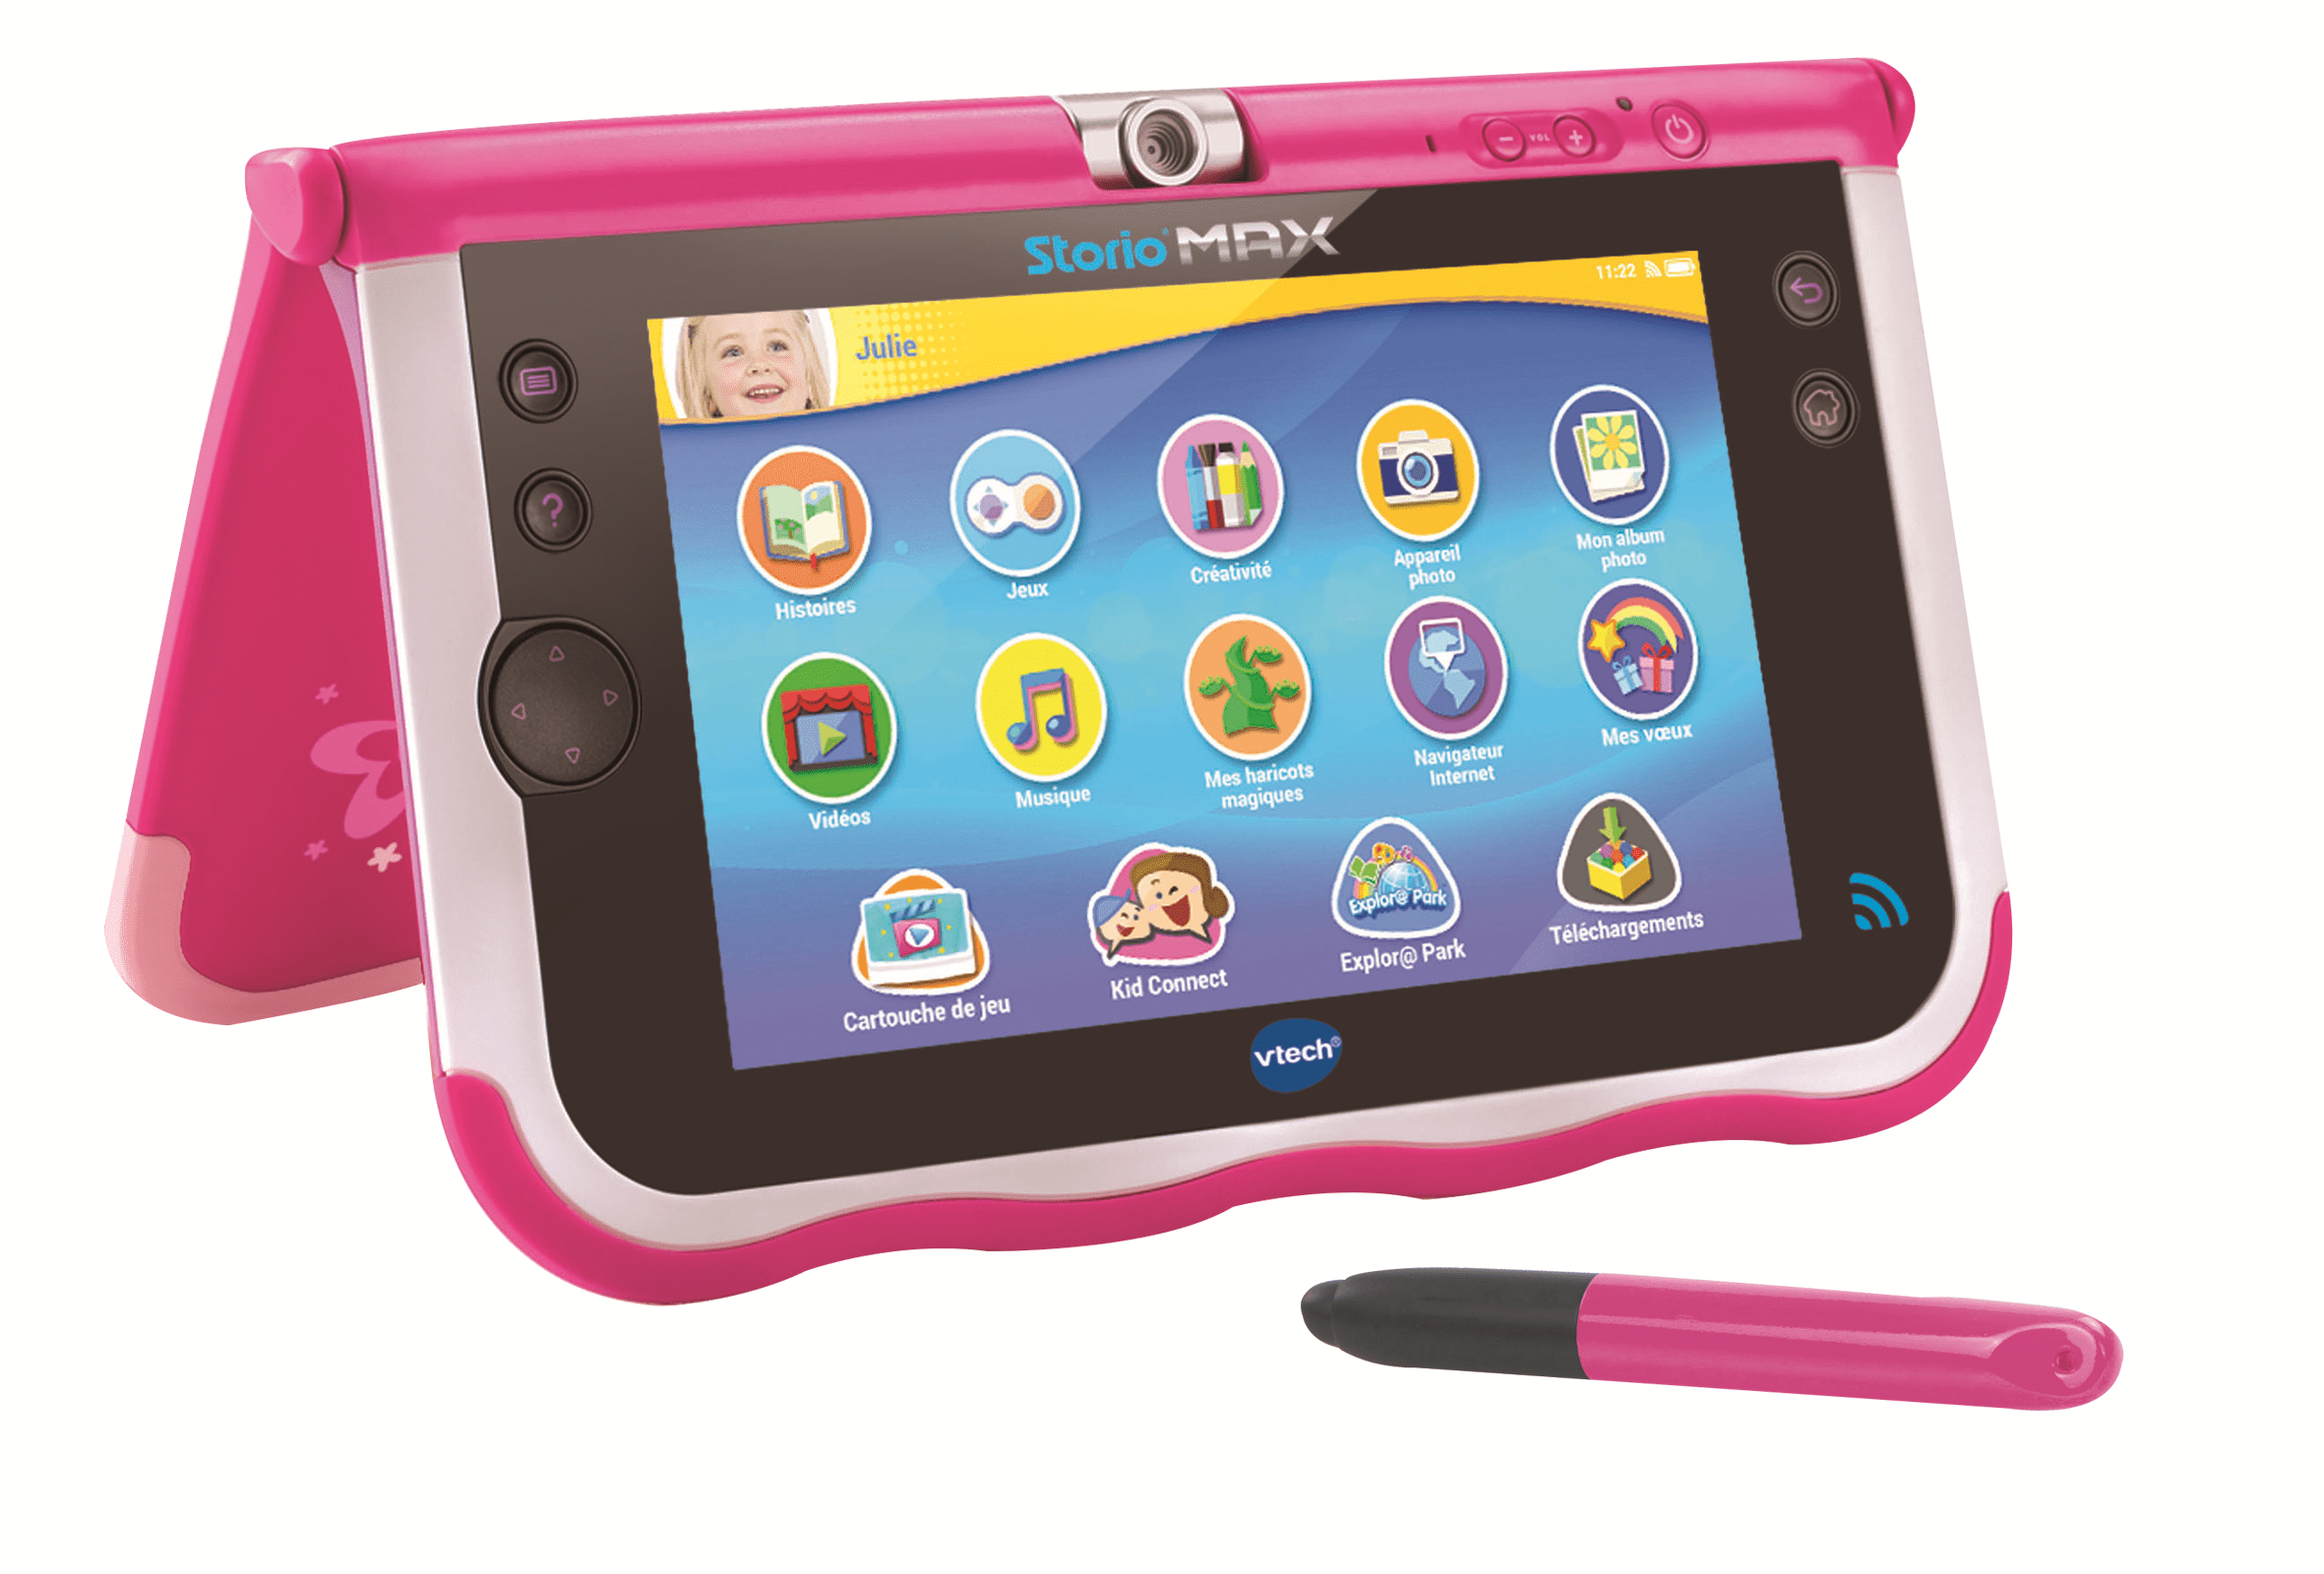 vtech storio max 7 rose tablette enfant achat vente tablette enfant cdiscount. Black Bedroom Furniture Sets. Home Design Ideas